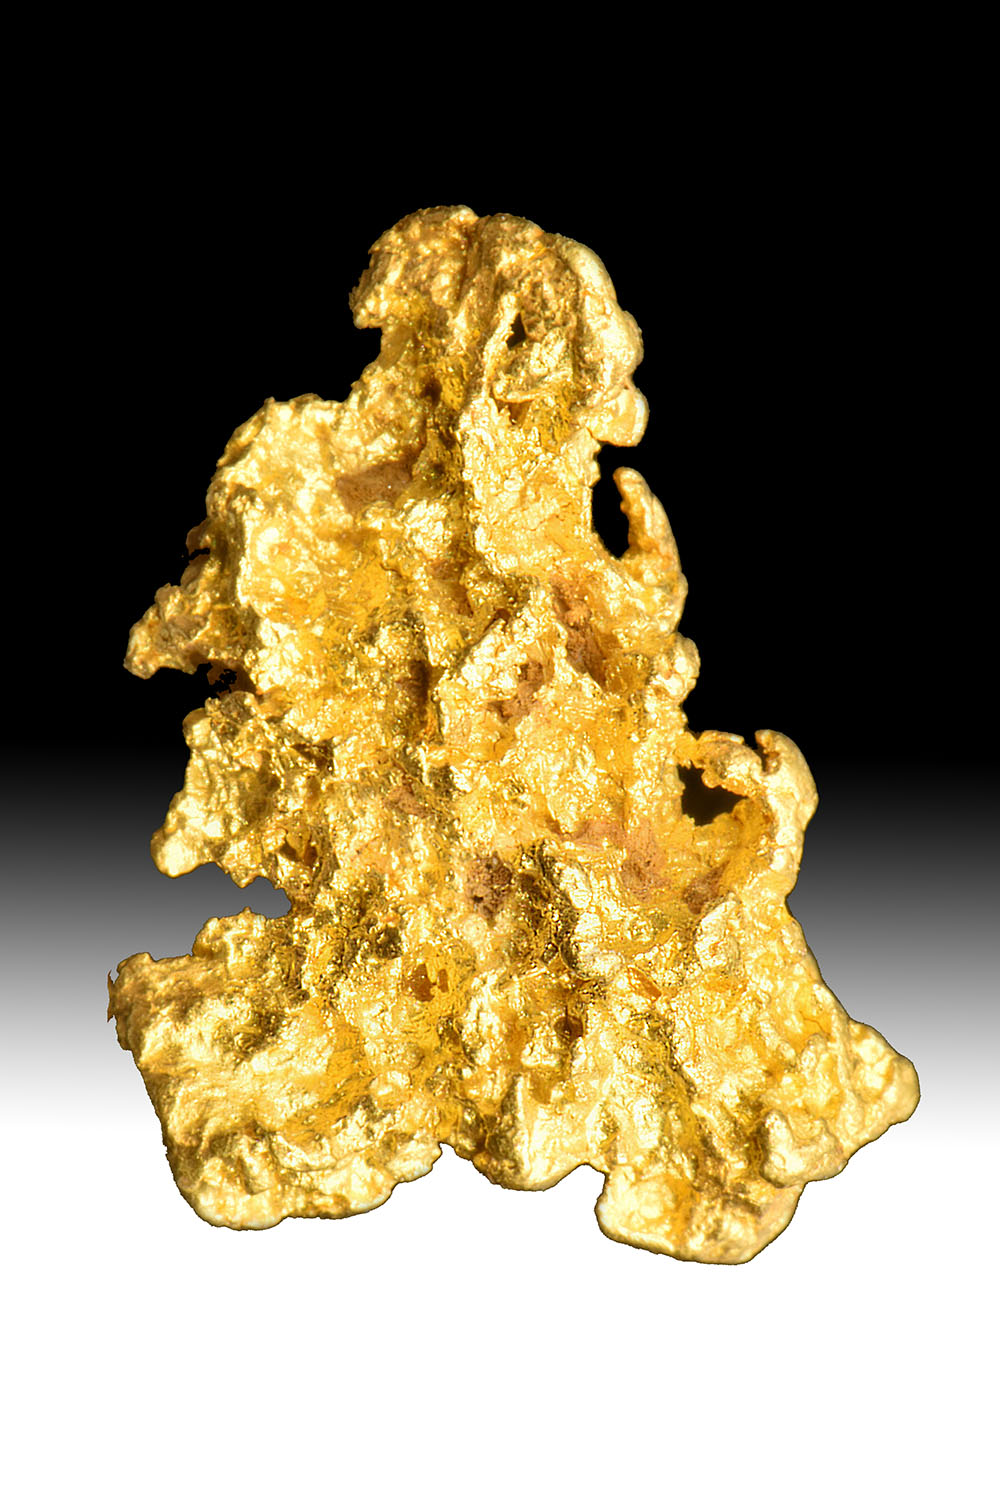 Gorgeous, Almost Crystalline Gold Nugget From Australia